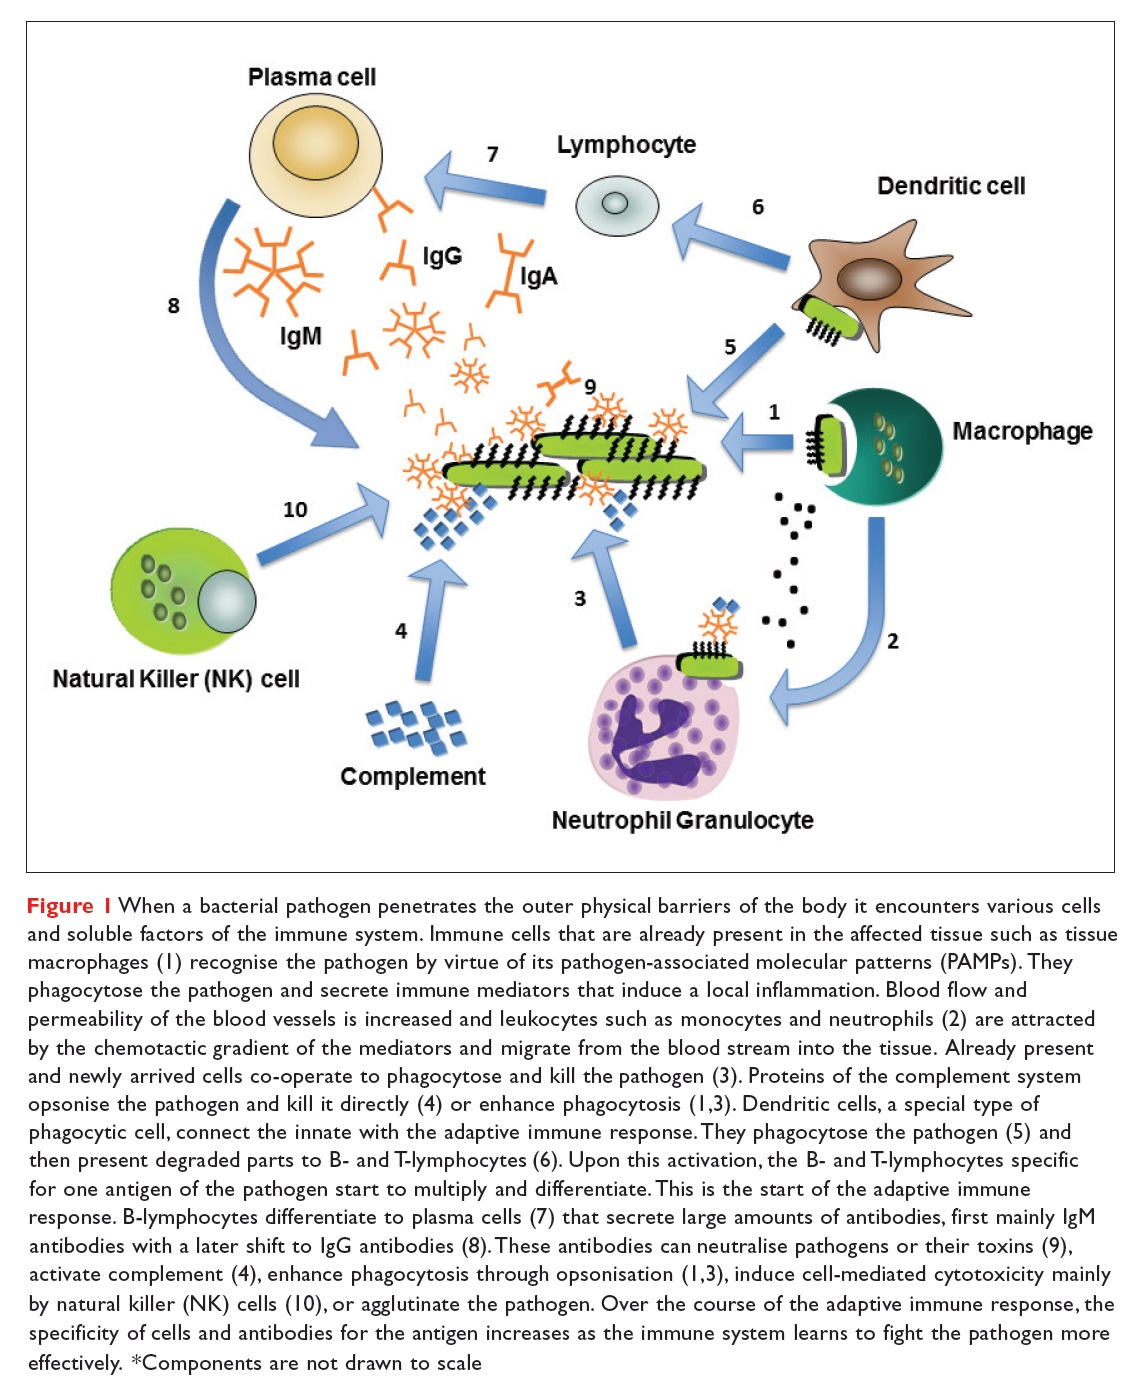 Figure 1 When a bacterial pathogen penetrates the outer physical barriers of the body it encounters various cells and soluble factors of the immune system